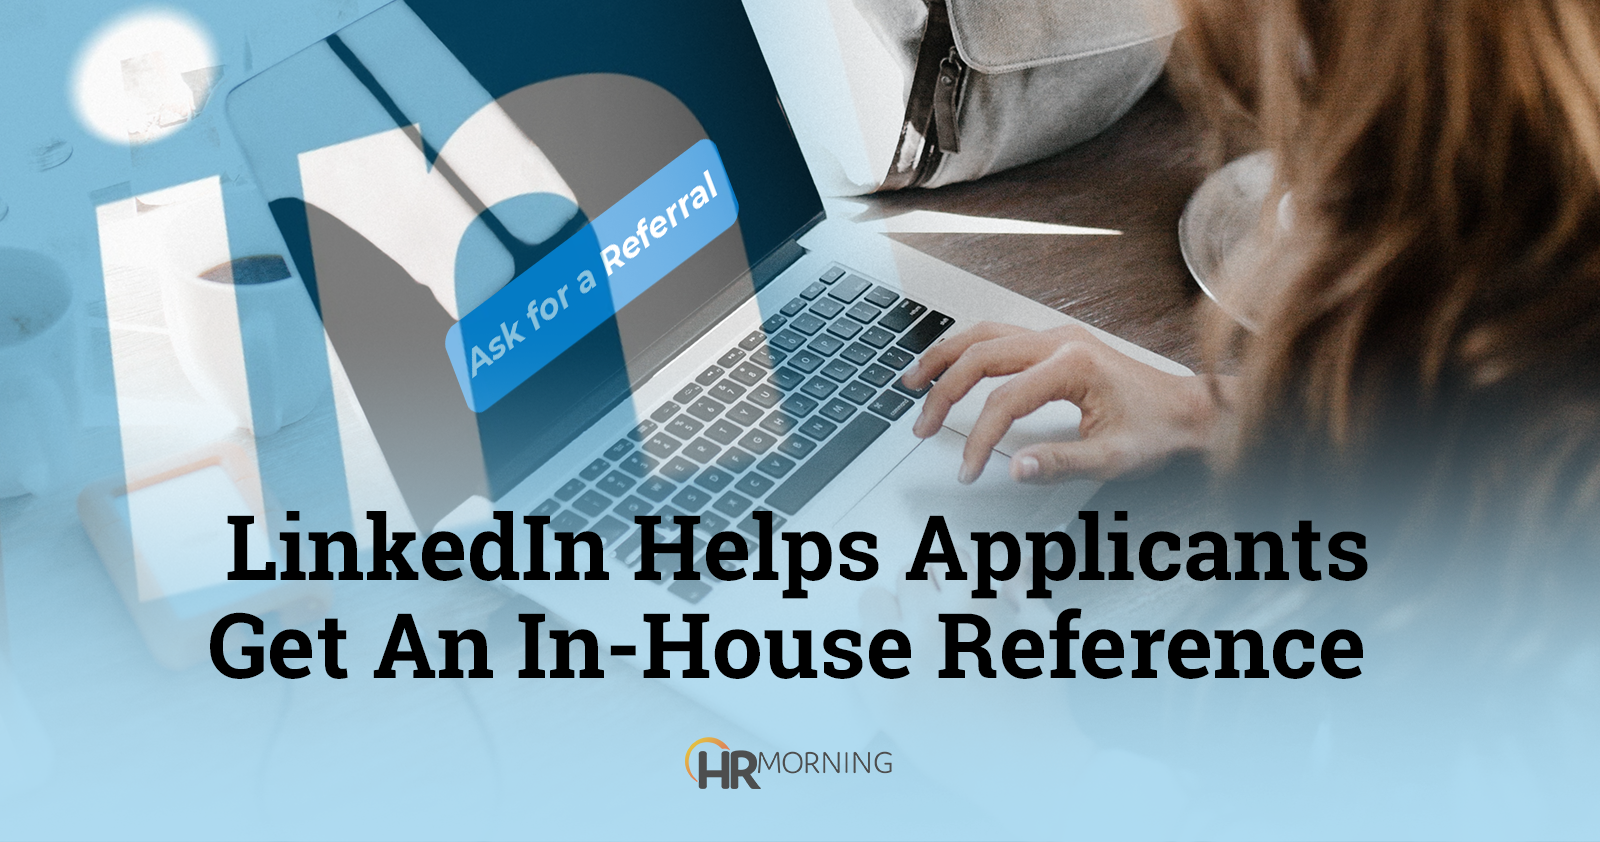 LinkedIn helps applicants get an in-house reference